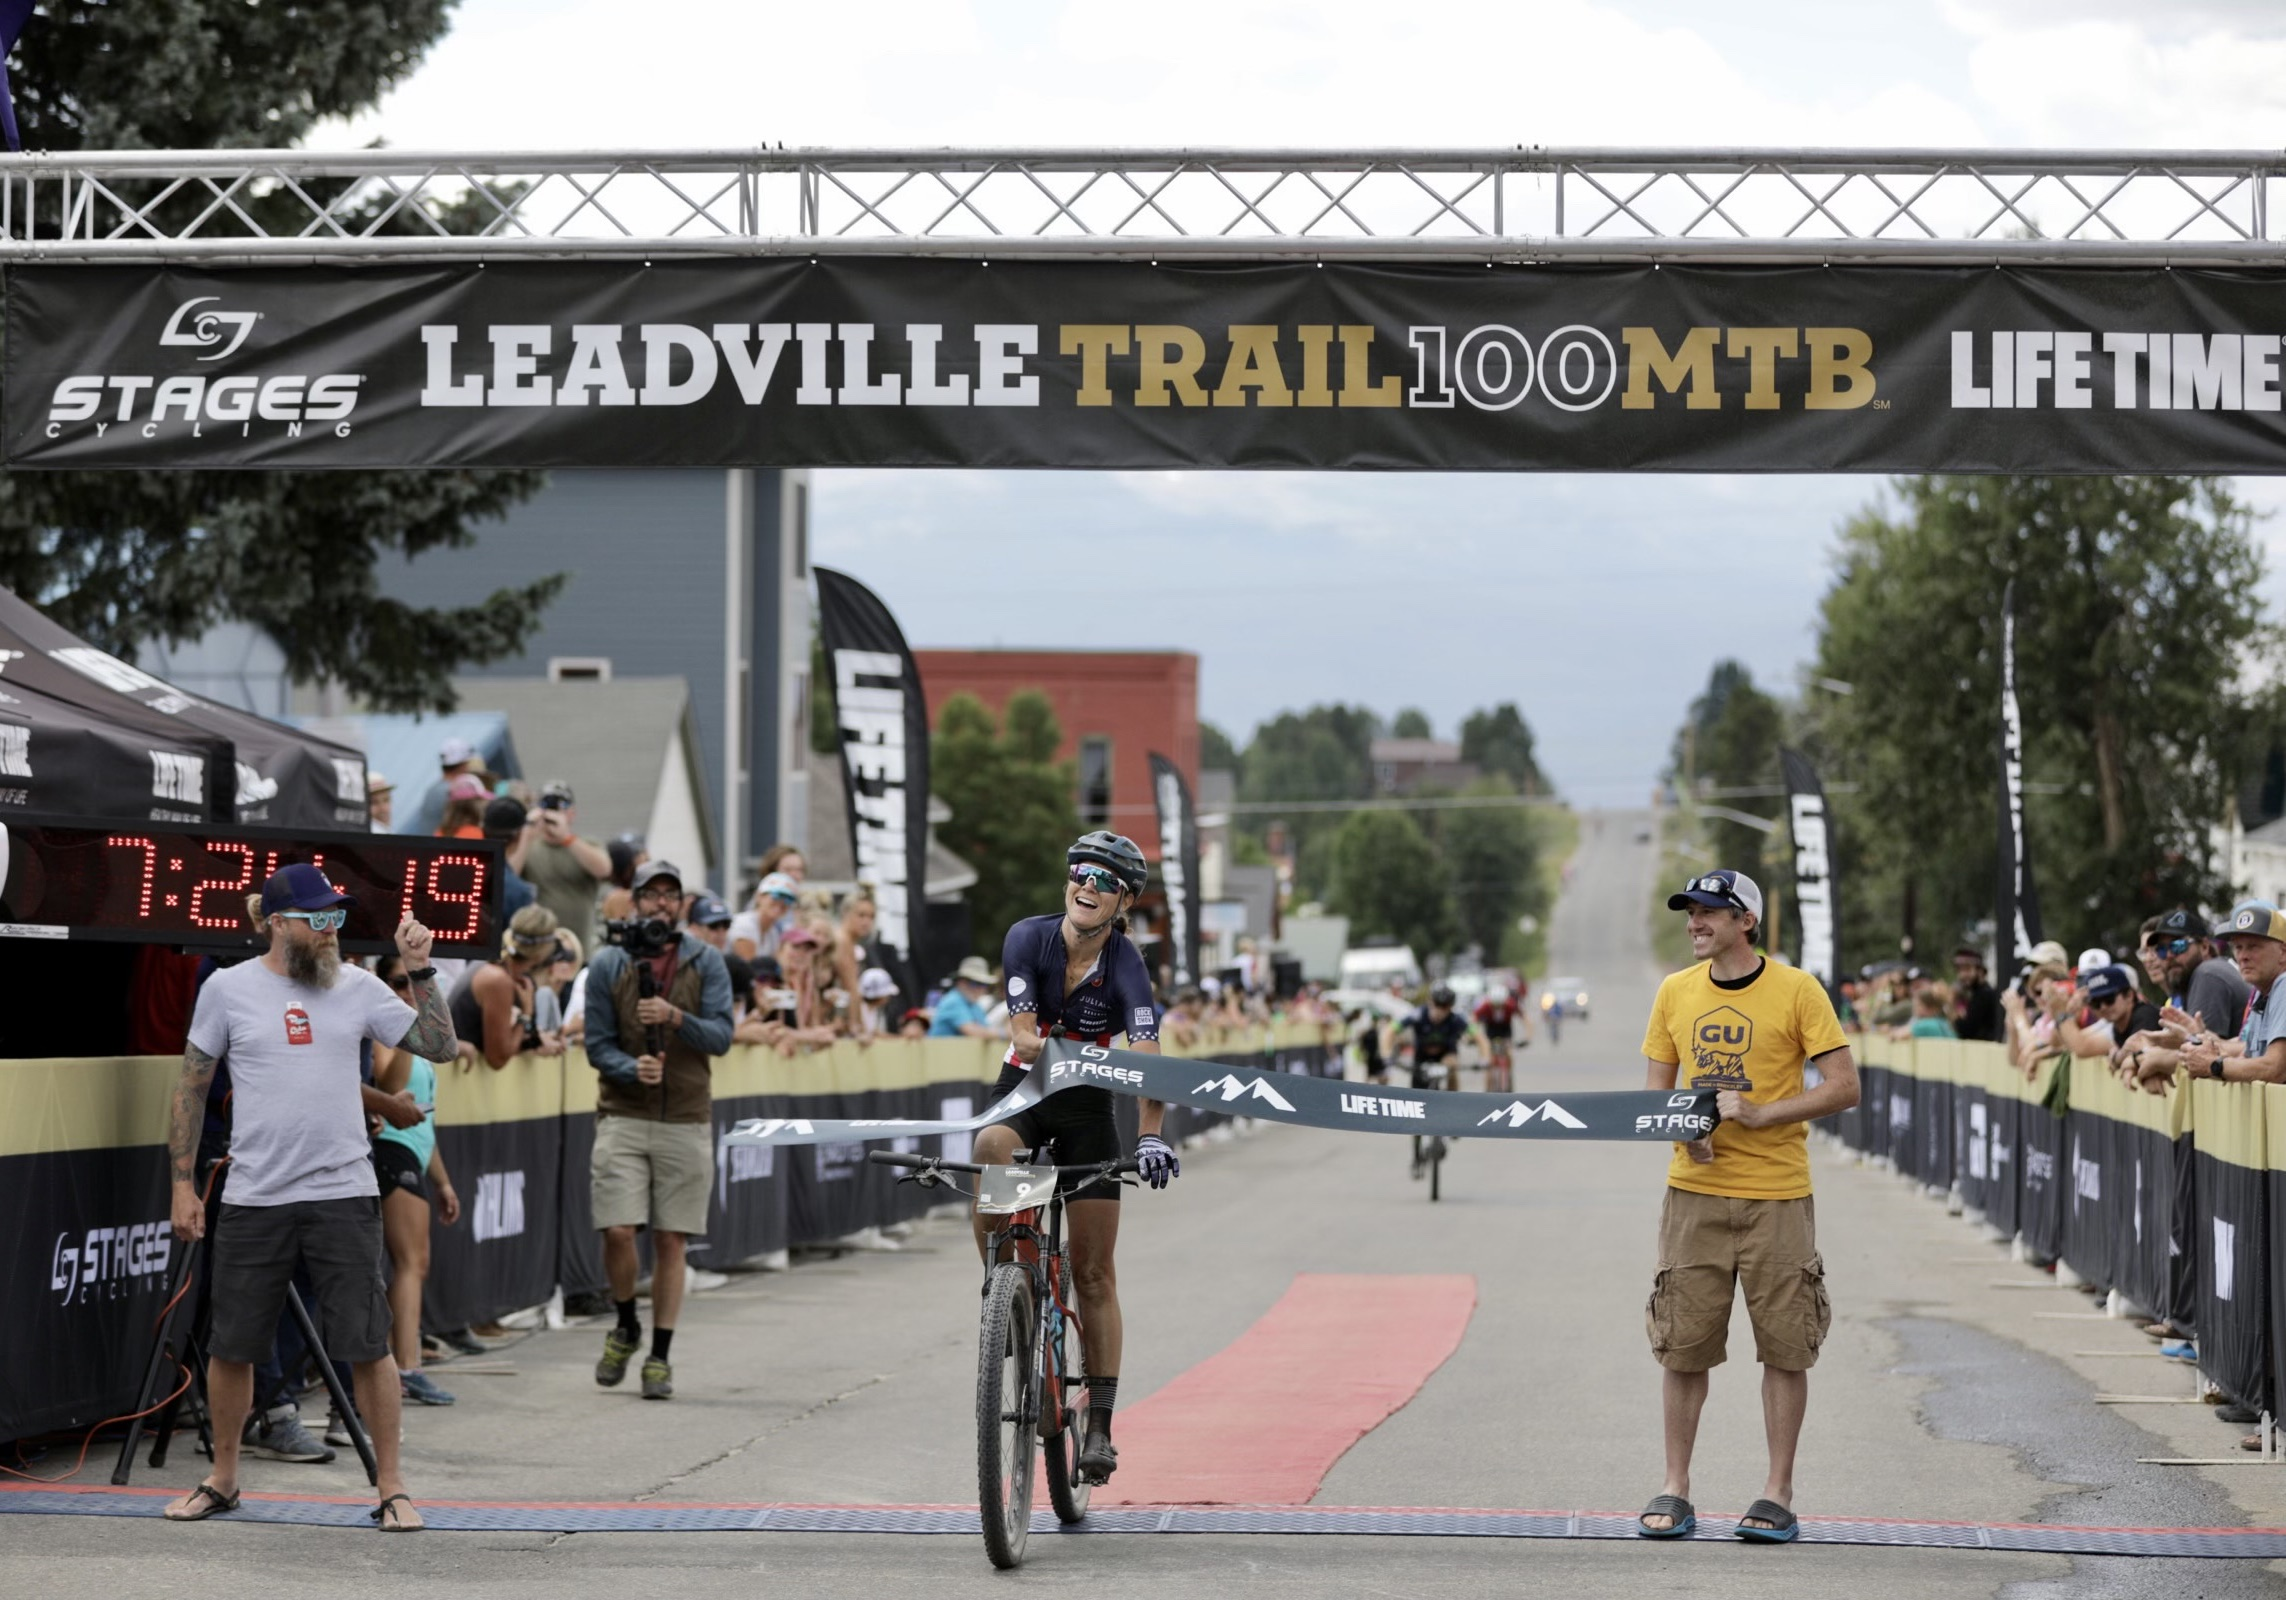 Rose Grant crossing the finish banner at the Leadville MTB